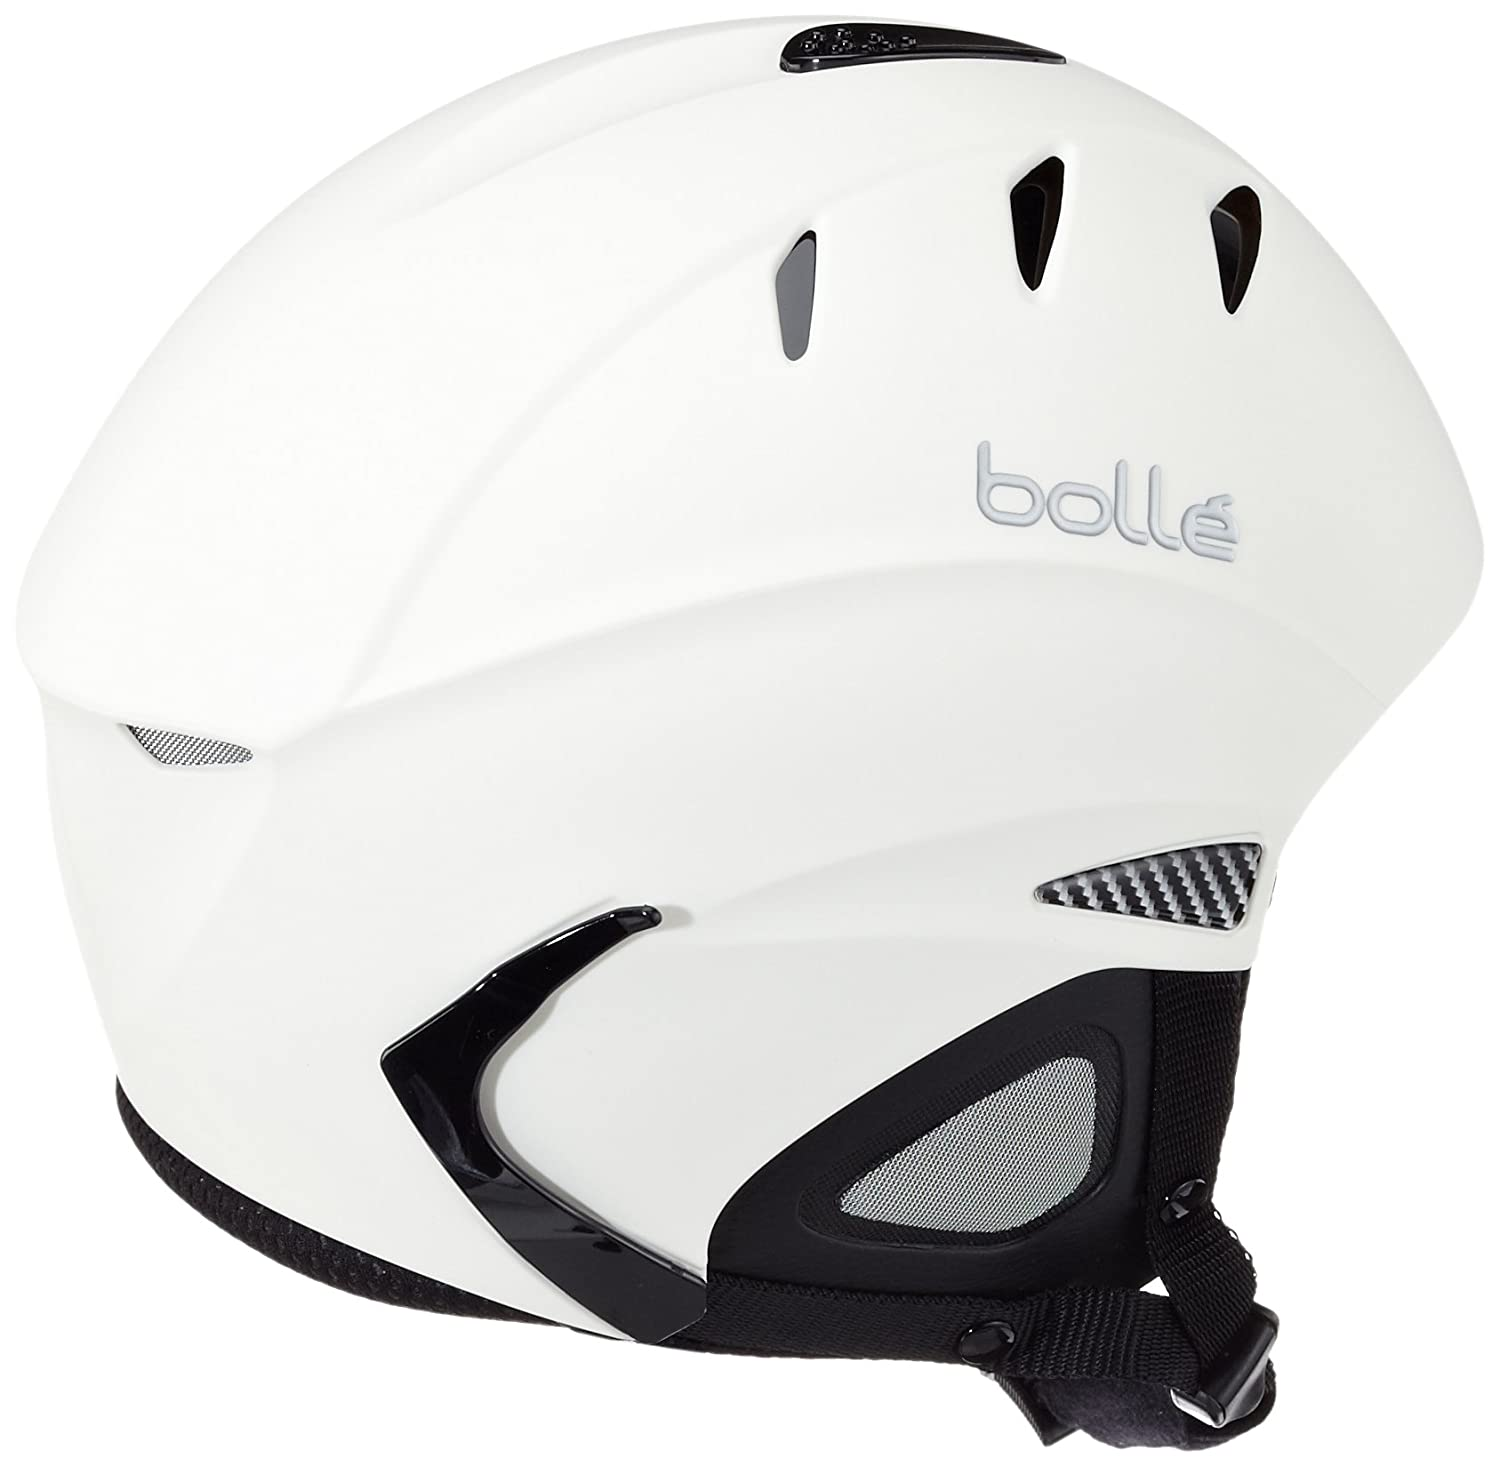 Bolle - Casco de esquí, tamaño XL (62cm), color blanco: Amazon.es: Ropa y accesorios